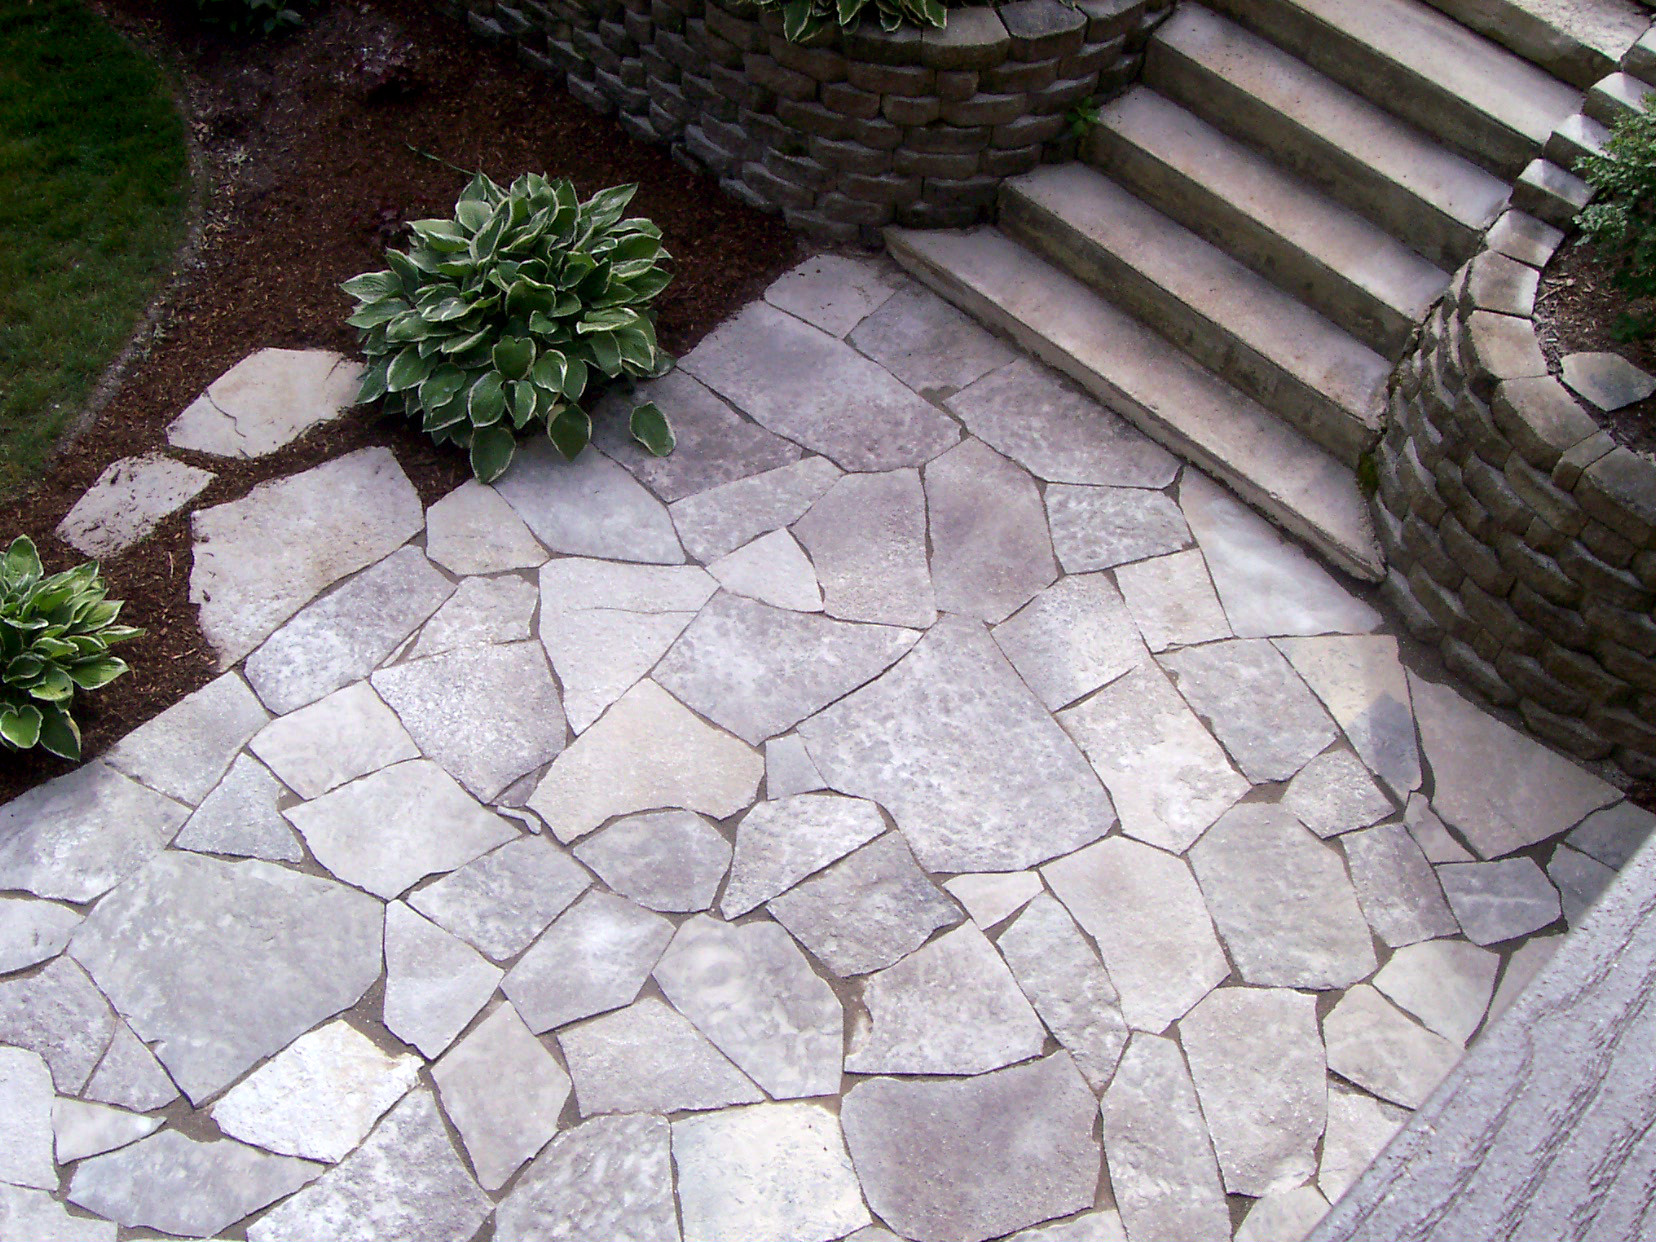 Patio Price Points. Consider How You Will Make Your Patio Material  Decisions. Ultimately It Comes Down To Price, Value, And Quality.